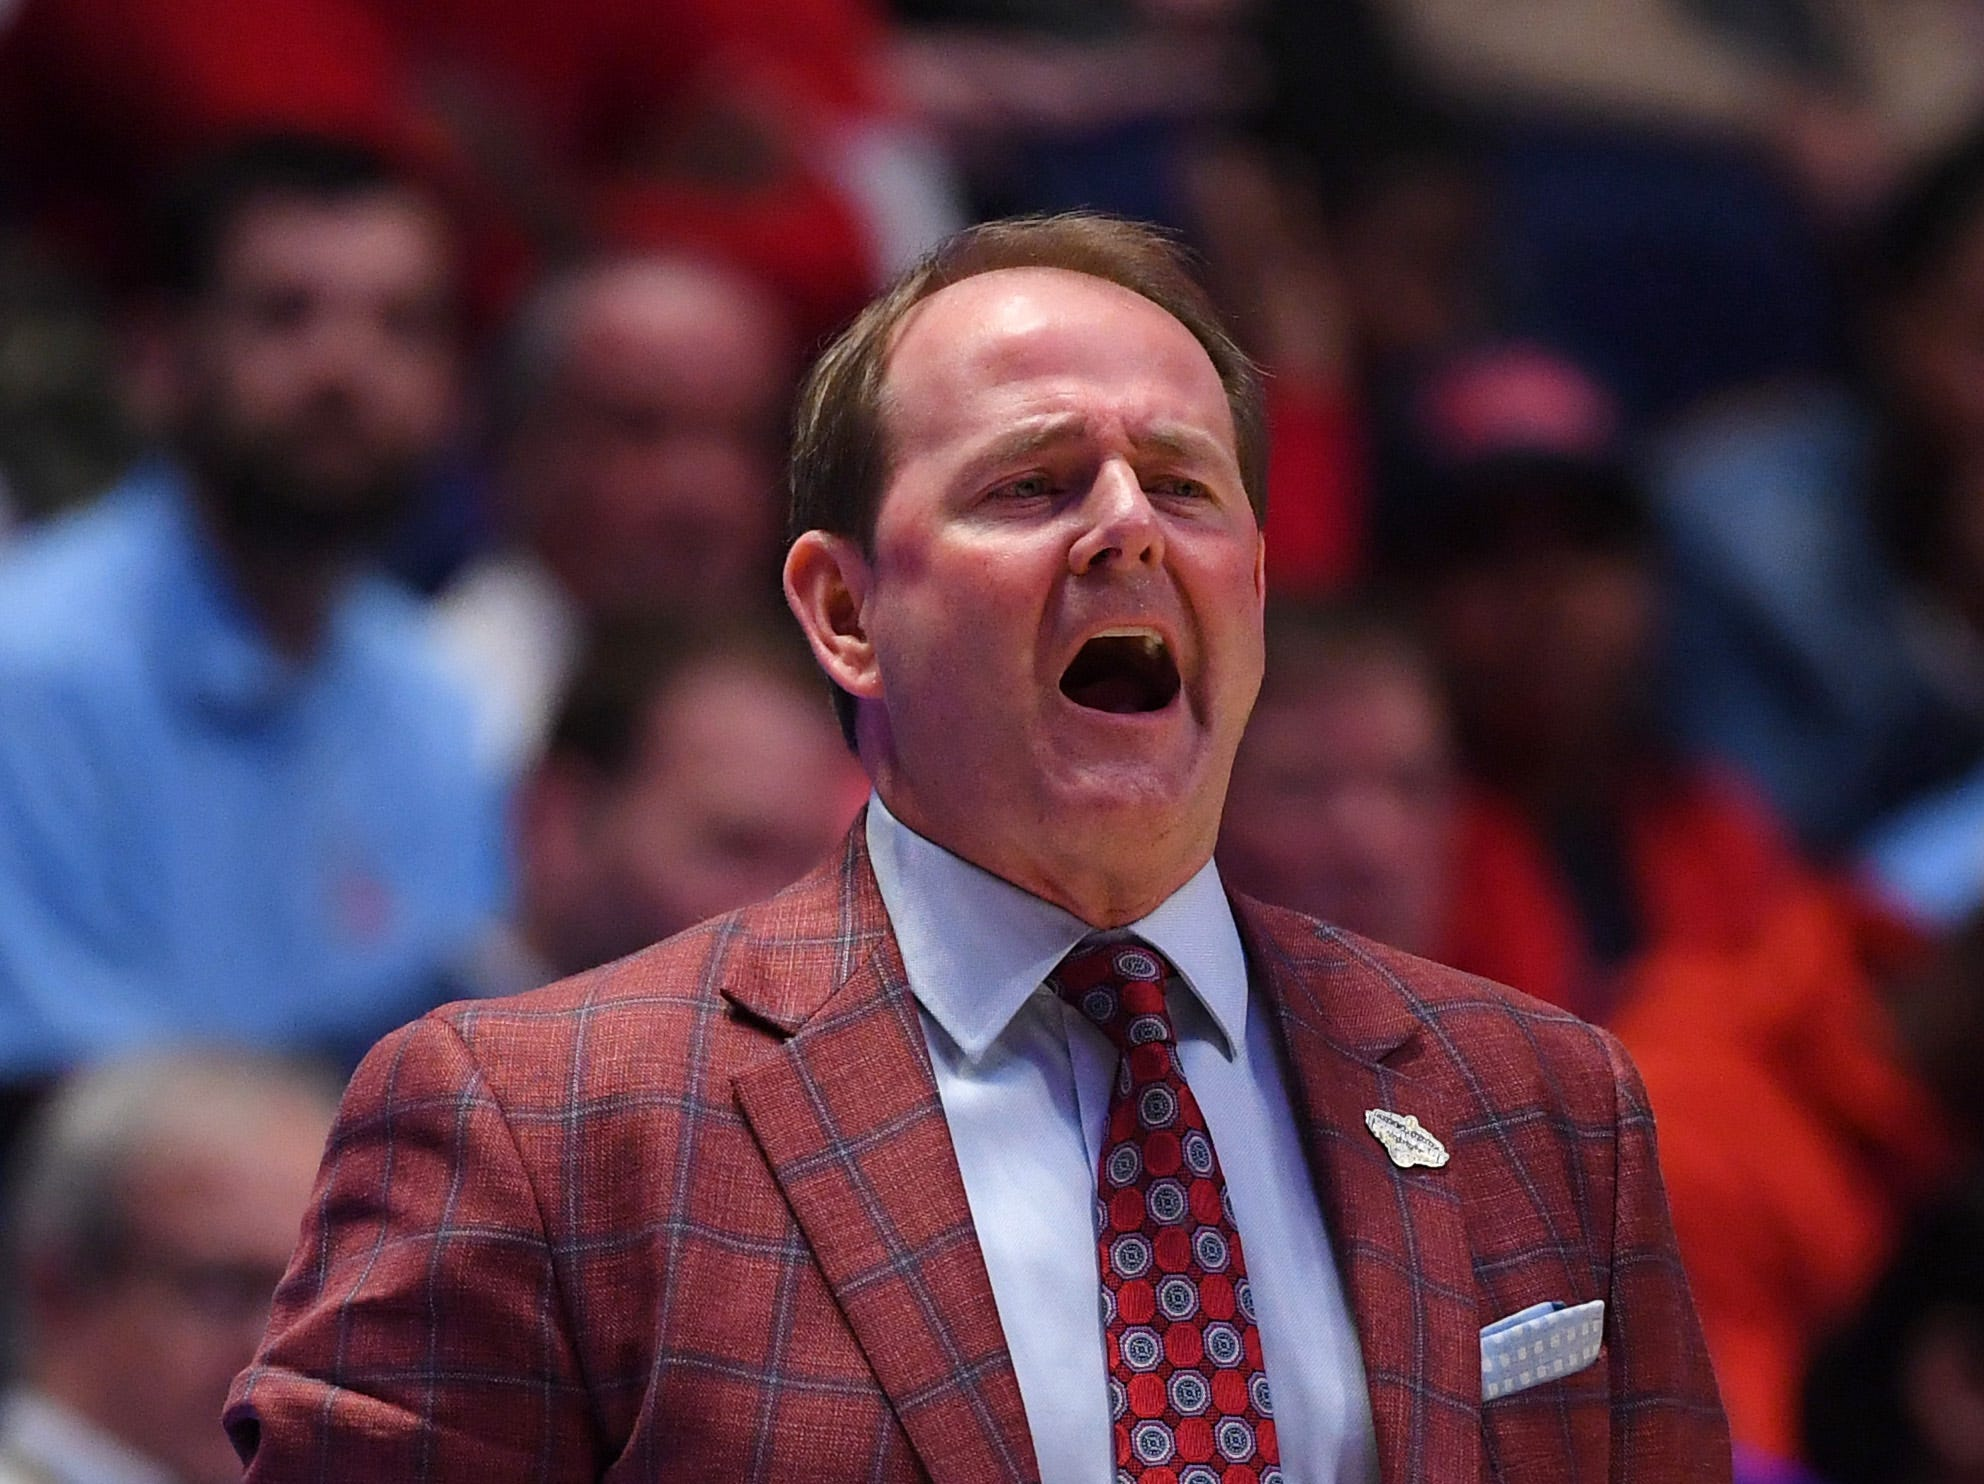 Mar 14, 2019; Nashville, TN, USA; Mississippi Rebels head coach Kermit Davis during the first half of the SEC conference tournament at Bridgestone Arena. Mandatory Credit: Christopher Hanewinckel-USA TODAY Sports